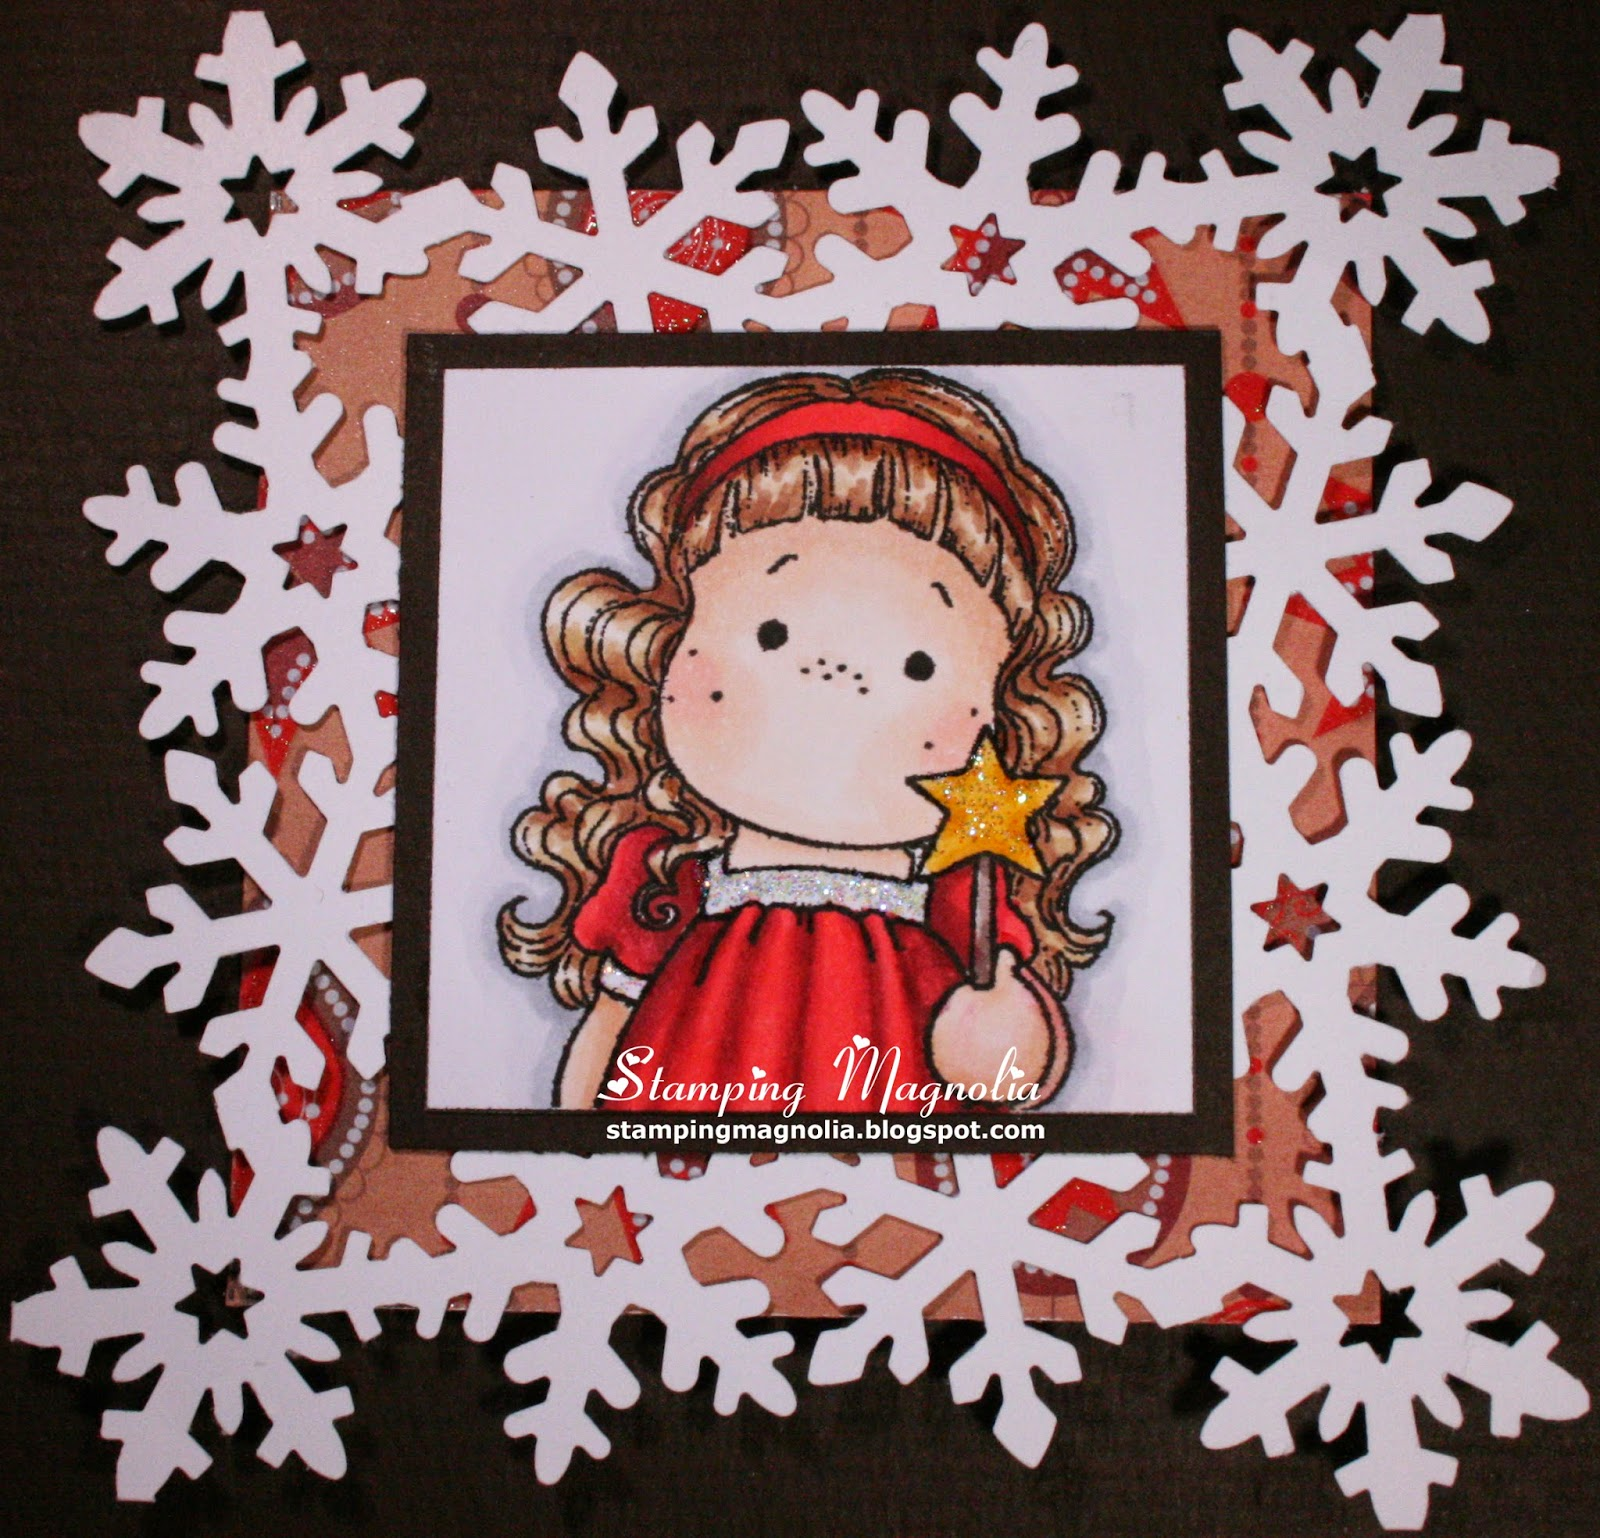 Coloring Magnolia Stamp Merry Little Christmas Collection - Star Tilda